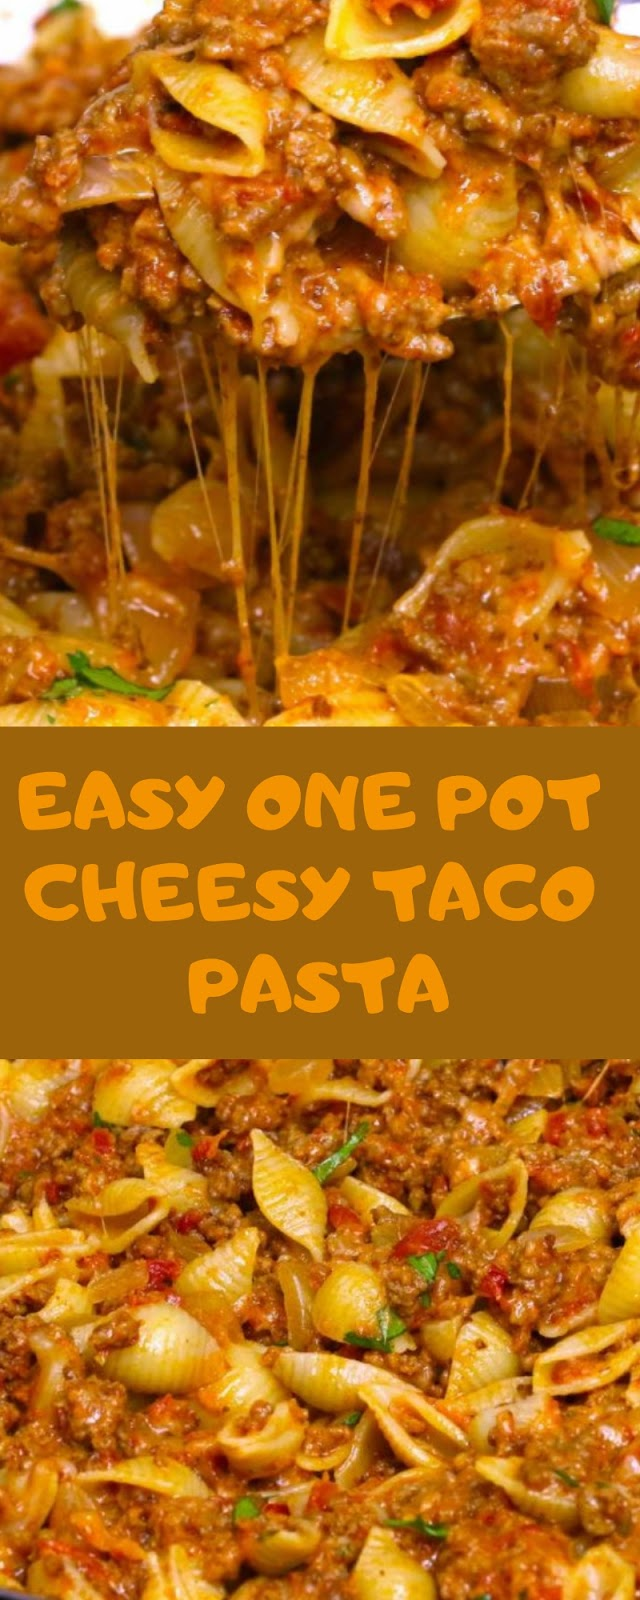 EASY ONE POT CHEESY TACO PASTA